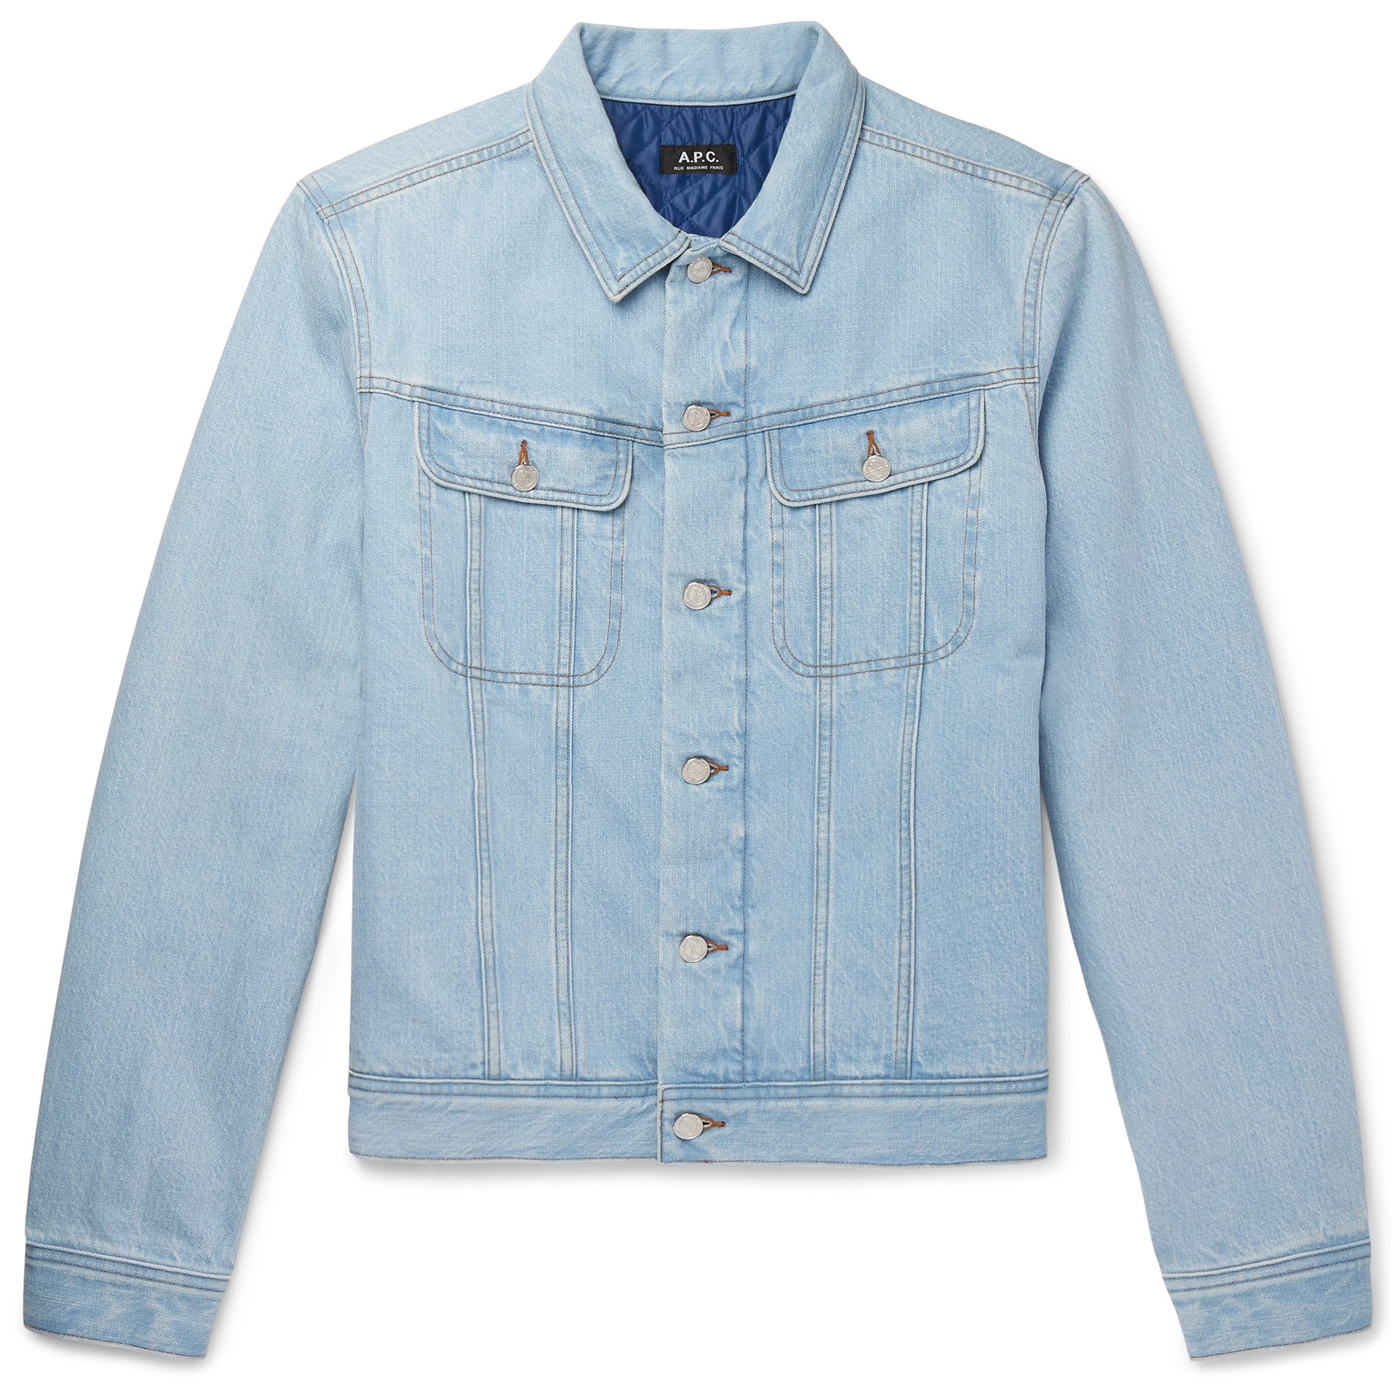 Style Mr Porter Veste Denim Jeans APC